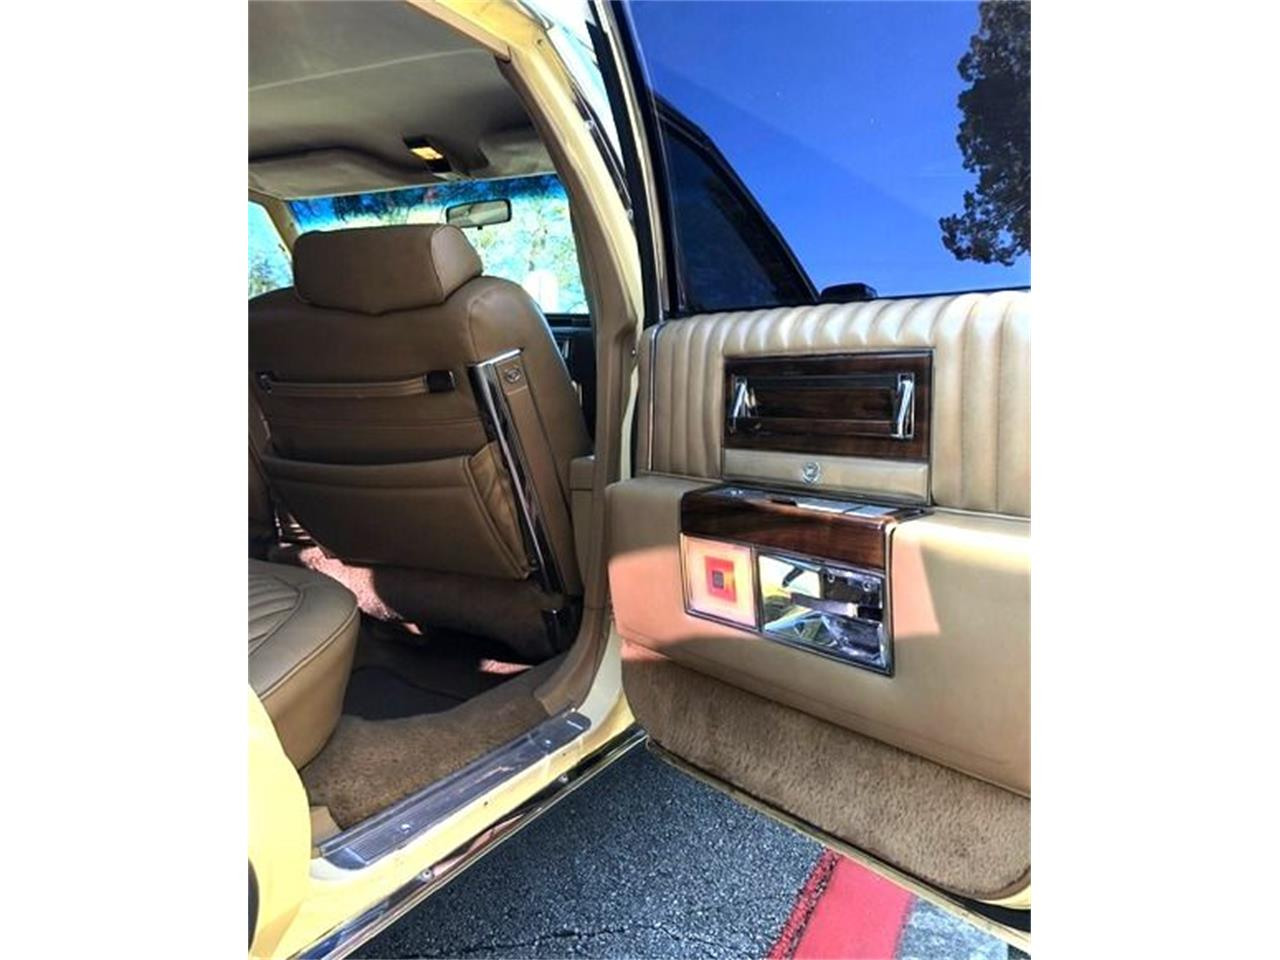 1987 Cadillac Fleetwood Brougham for sale in Stratford, NJ – photo 18